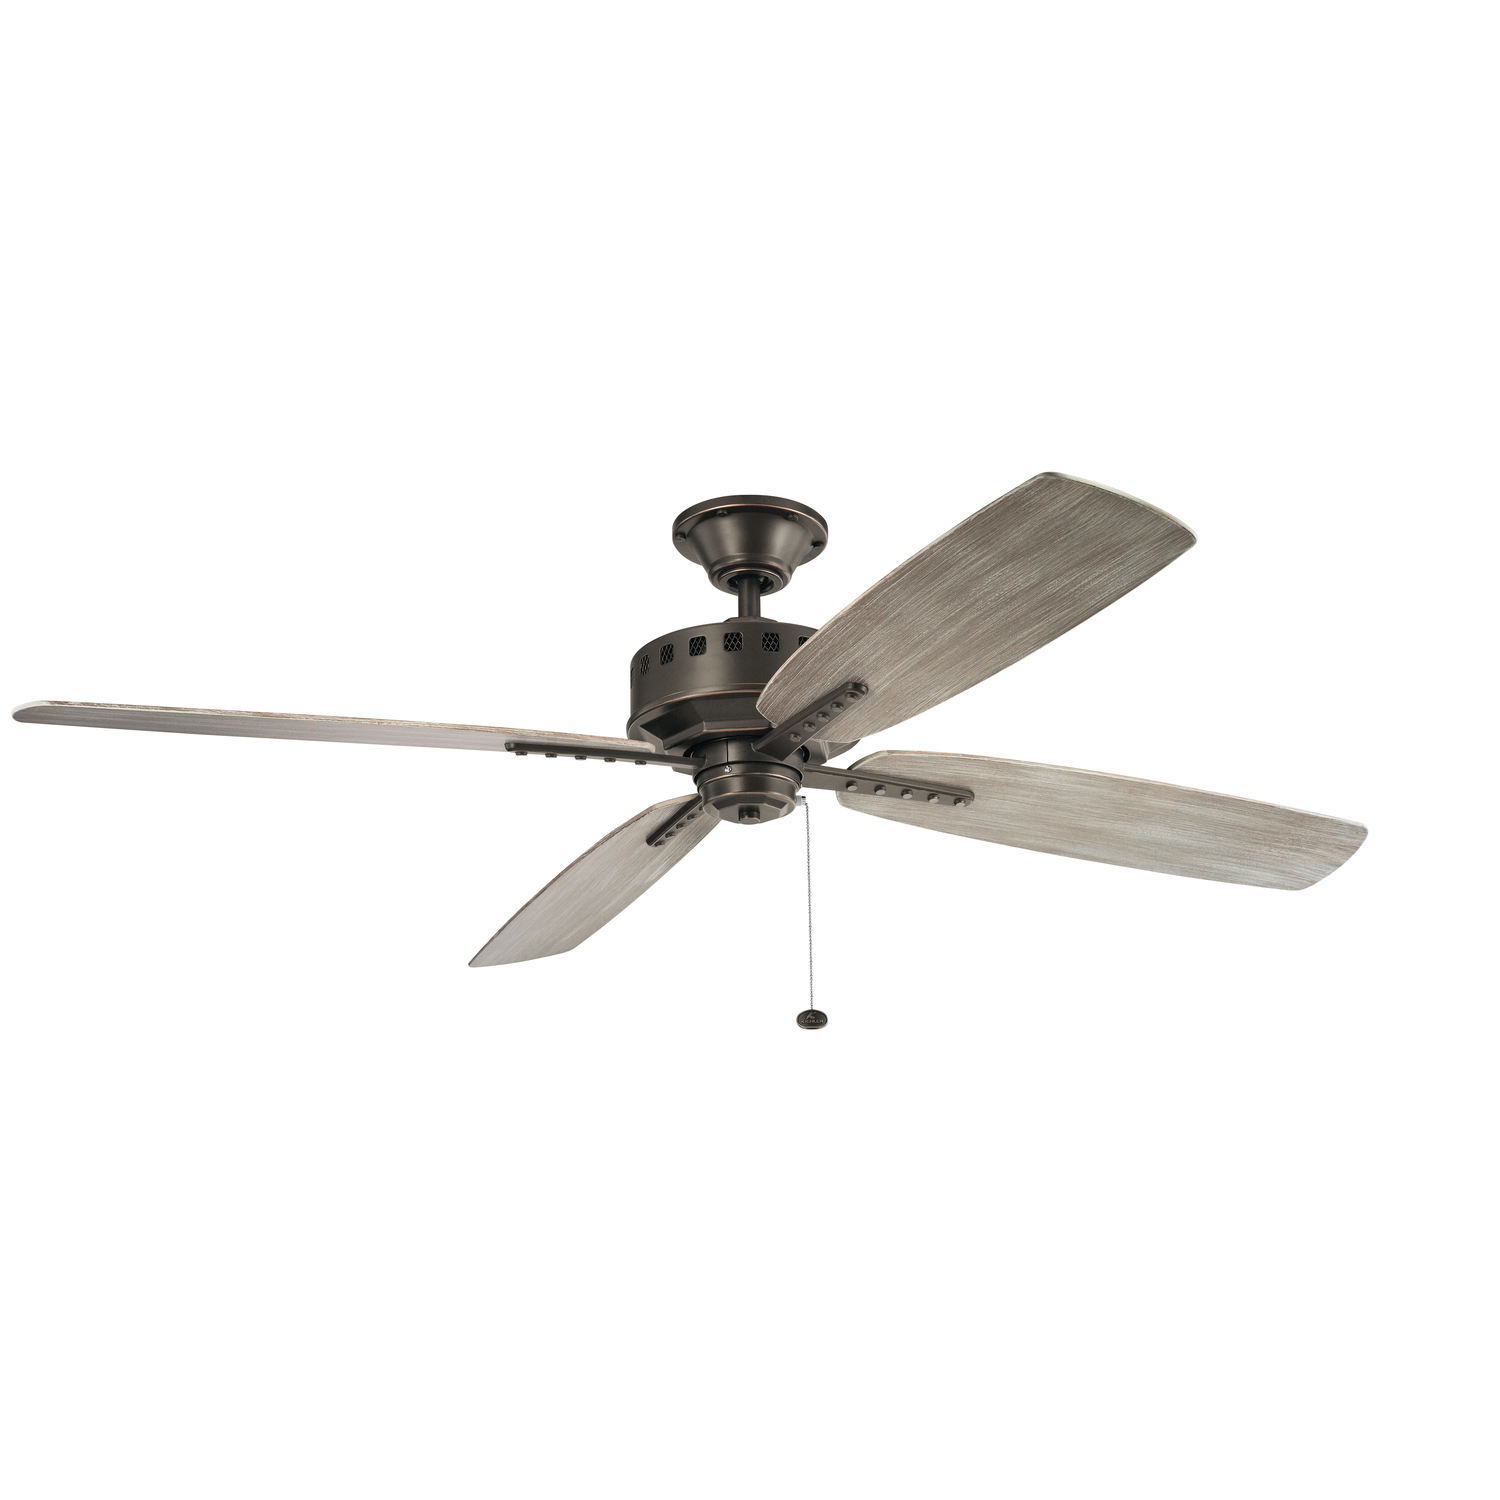 65 inchCeiling Fan from the Eads collection by Kichler 310165OZ